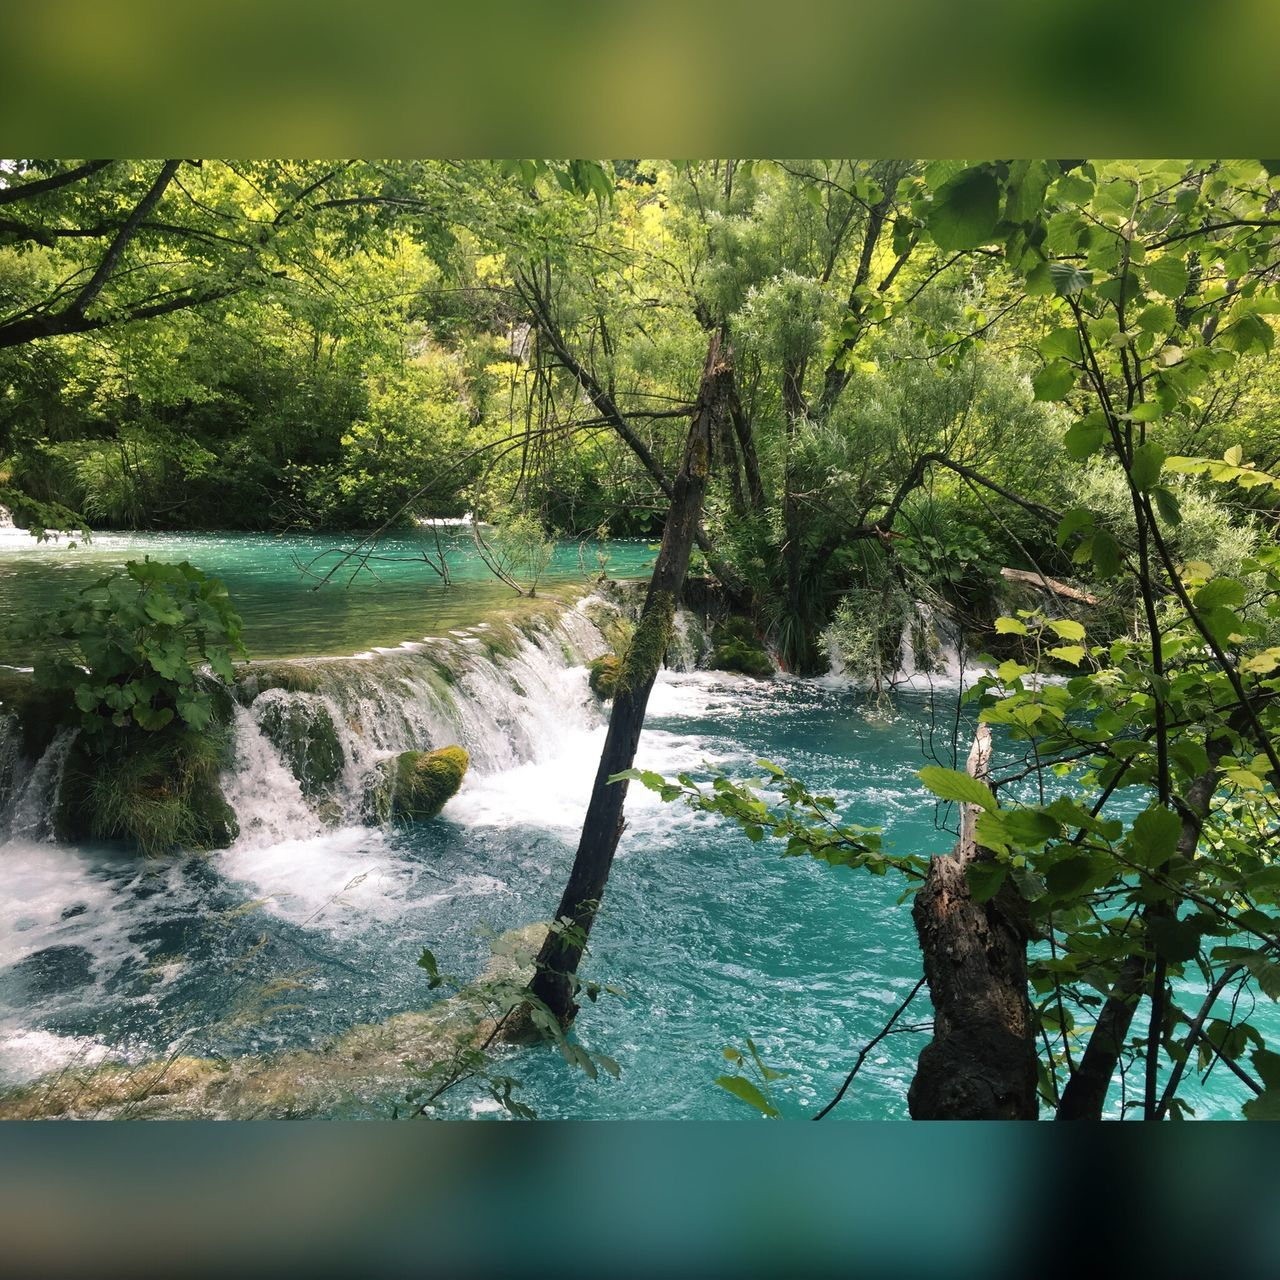 Water Nature Beauty In Nature Tree Waterfall No People Day Outdoors River Forest Green Color Motion Freshness Travel Destinations Mxndmxdchen03 Green Color No Filter Blue Color